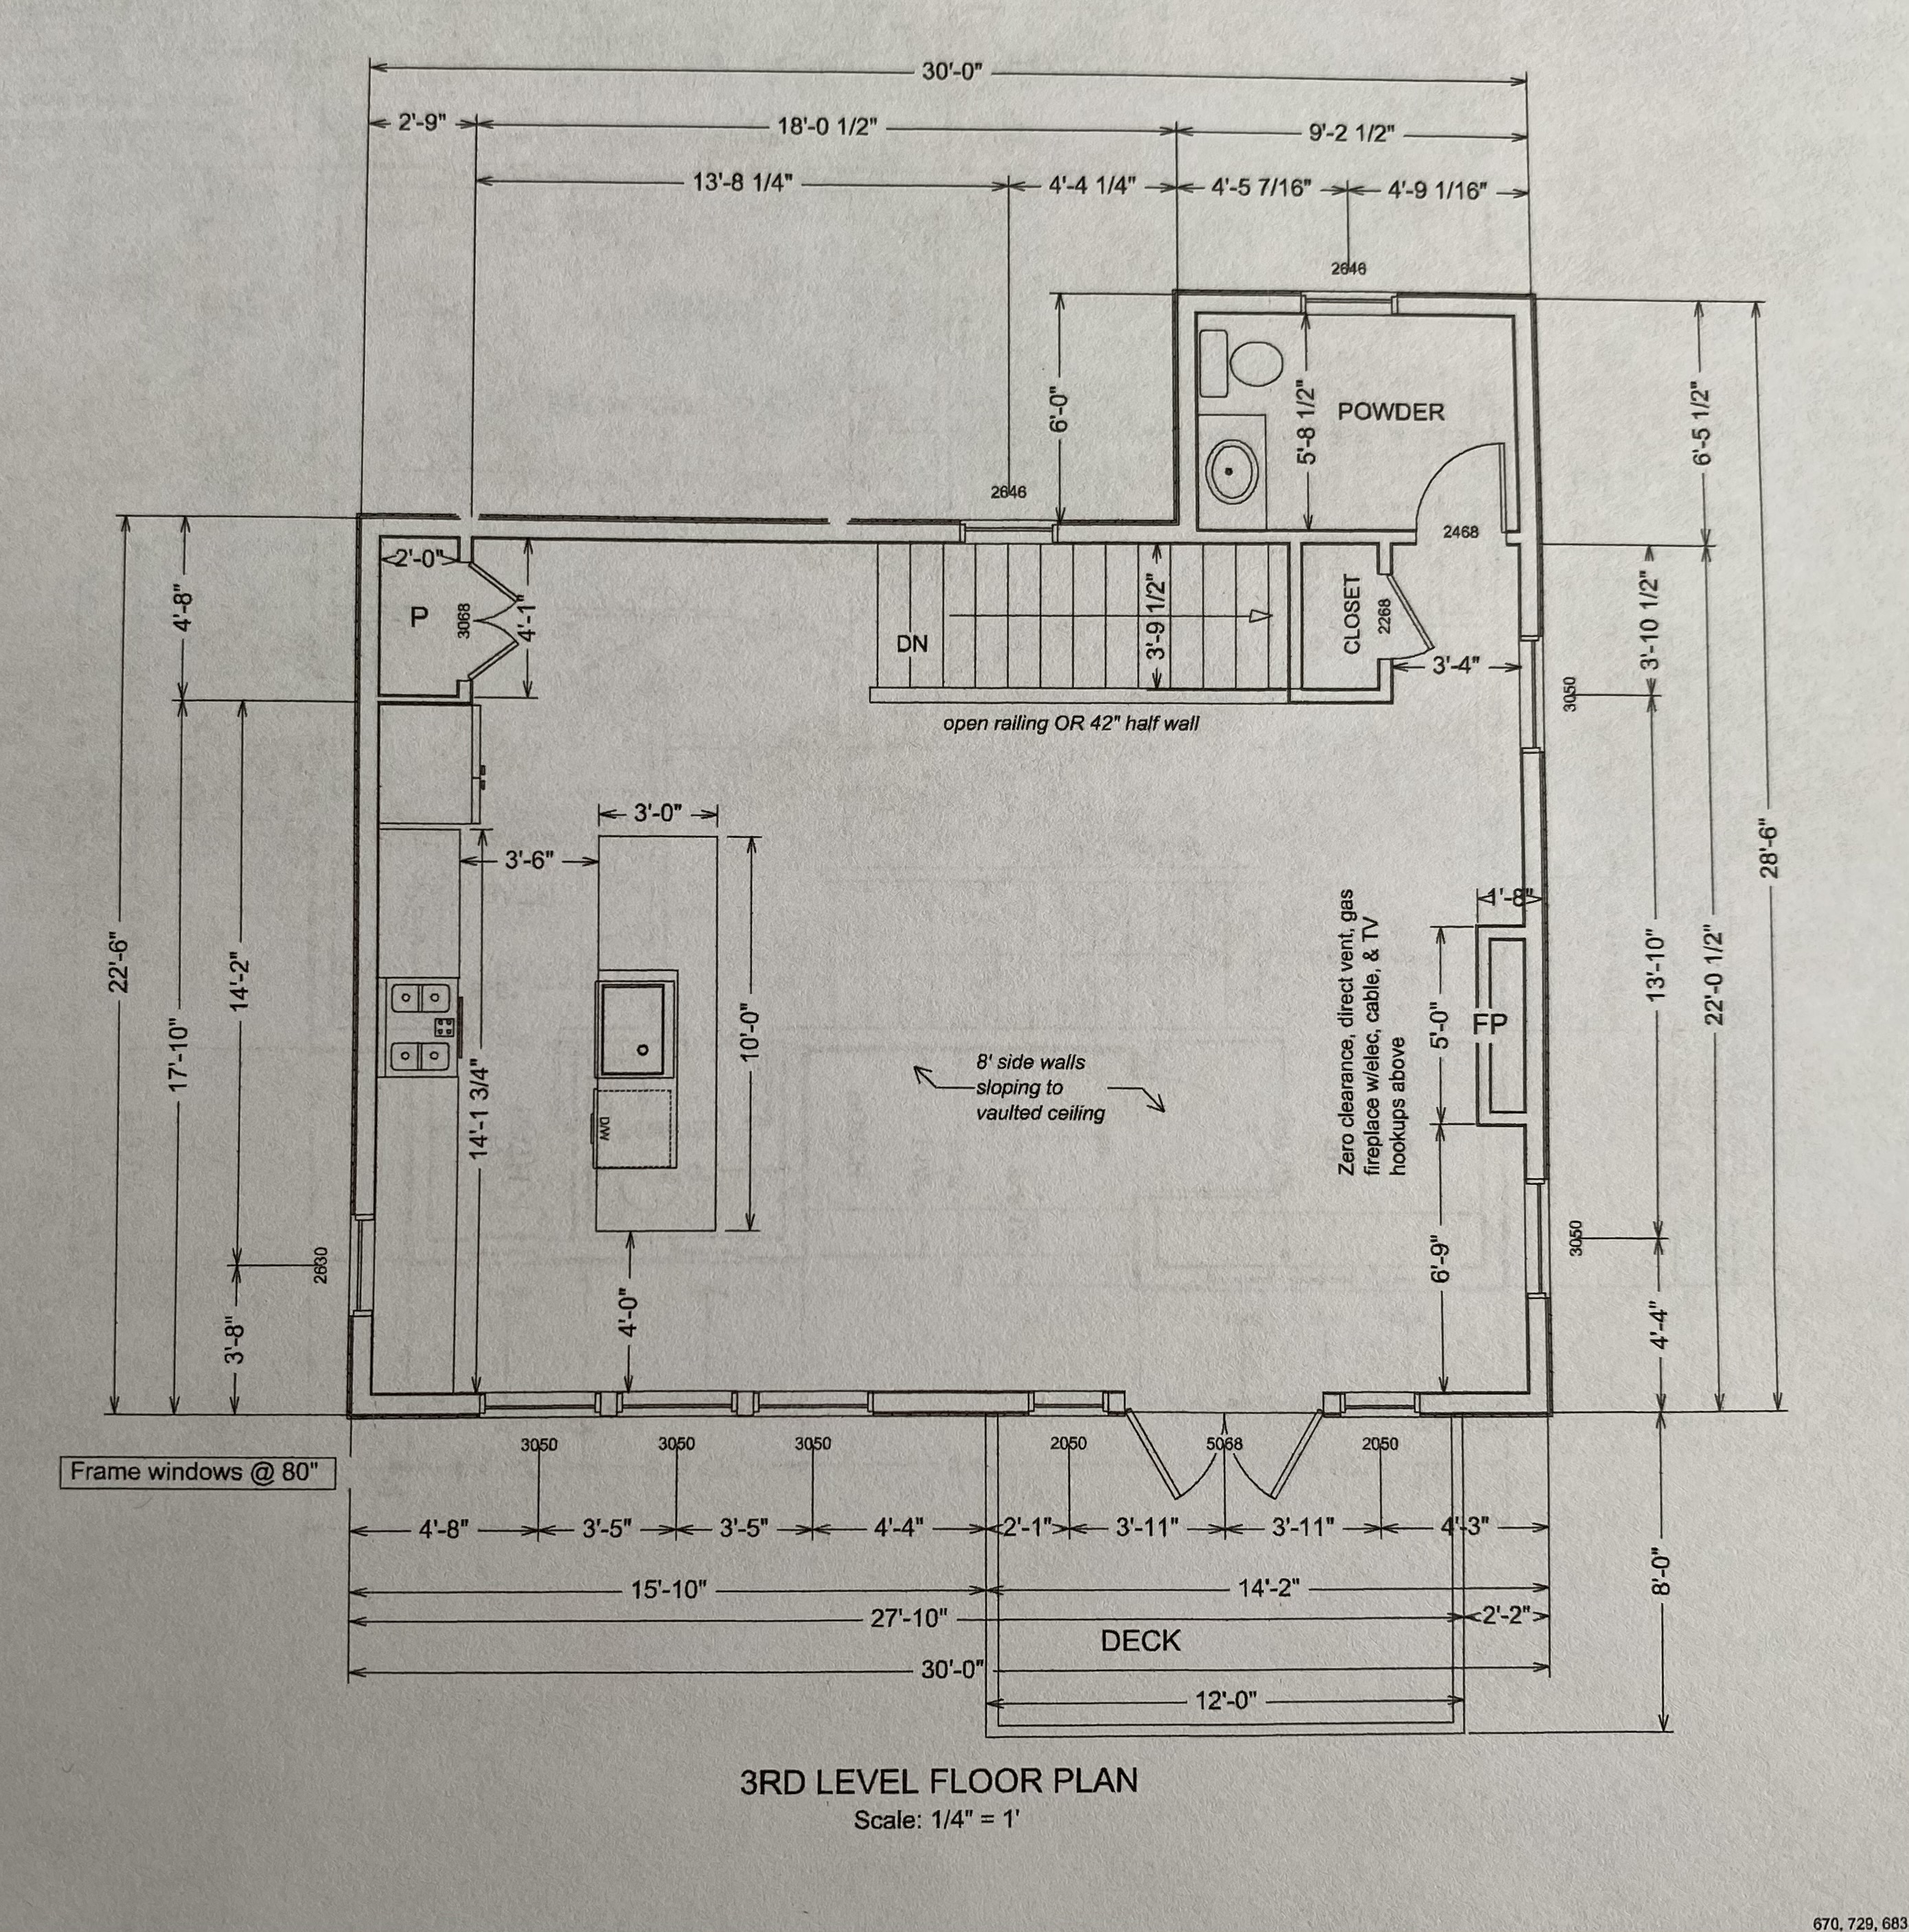 Lot 119 - New Plan Level 3